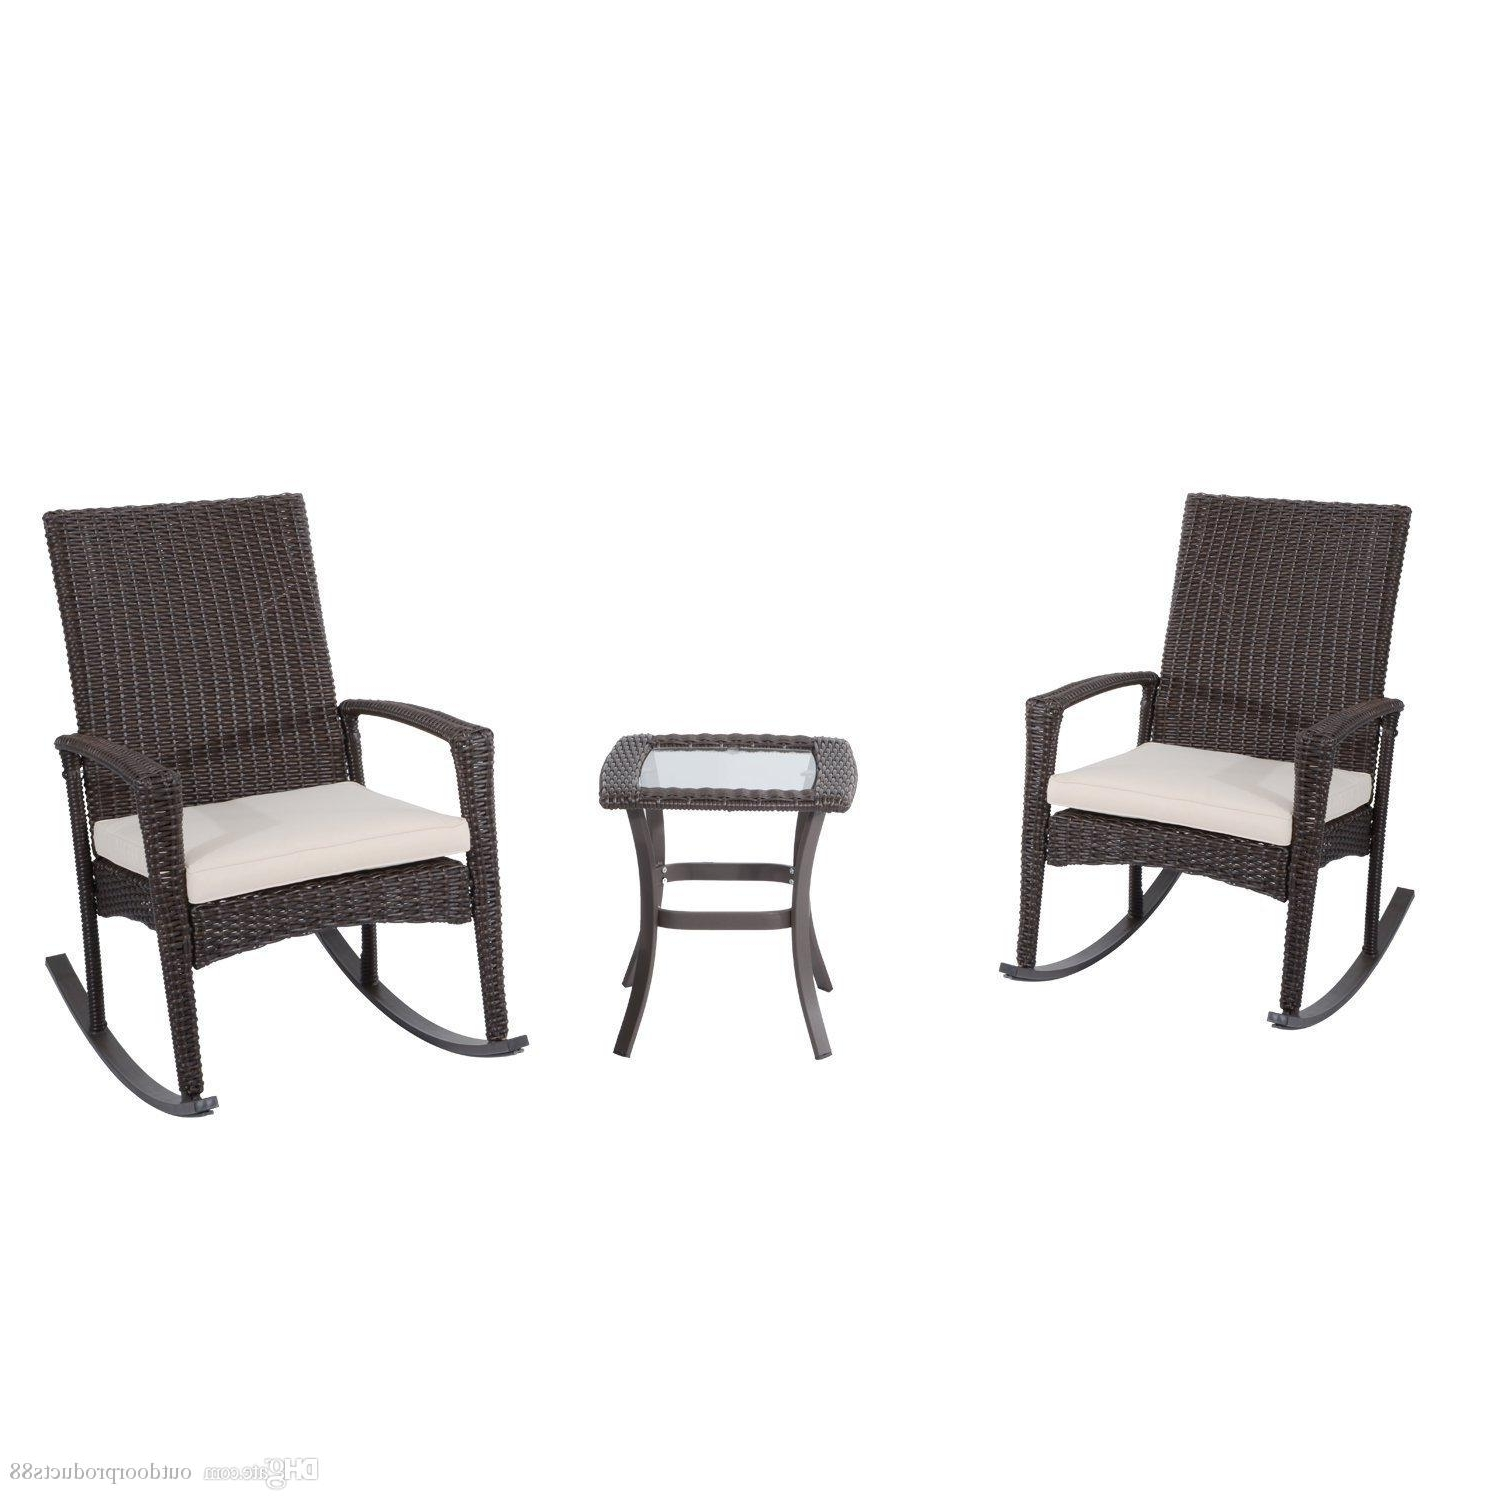 Famous Patio Rocking Chairs And Table Throughout 2018 Outdoor Rocking Chair And Table Set,rocking Rattan Wicker Chiar (View 4 of 20)